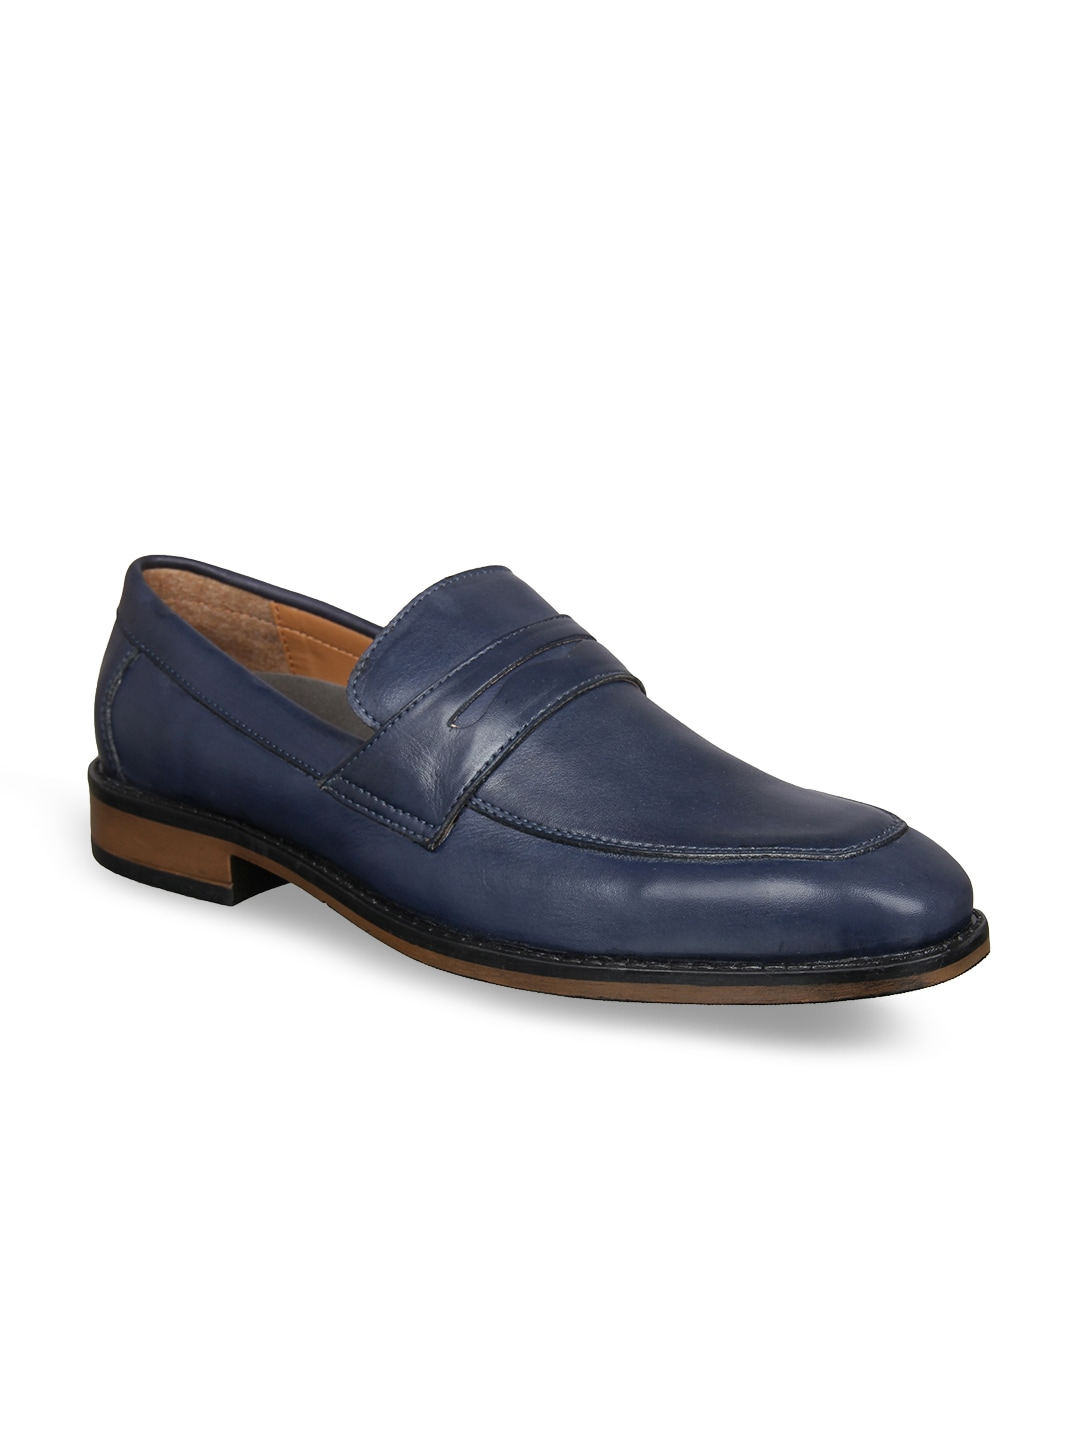 ddfa27f3a53 Loafer Shoes - Buy Loafer Shoes Online in India